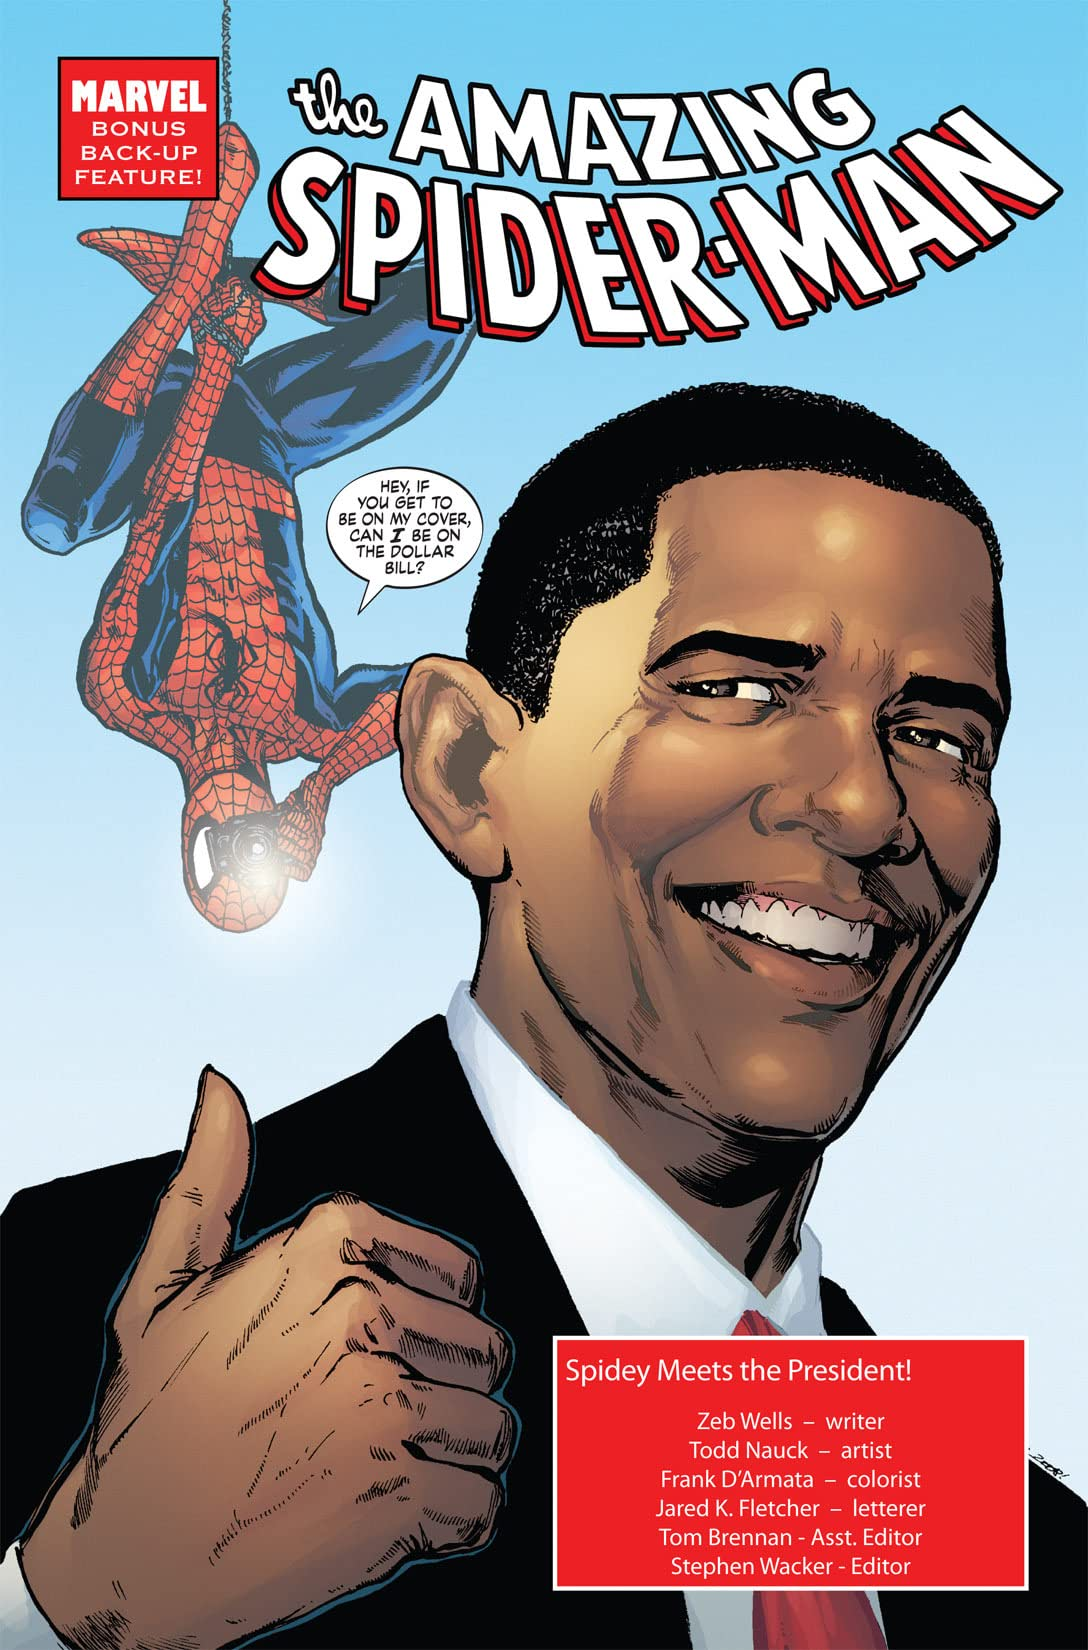 Spider-Man: Election Day